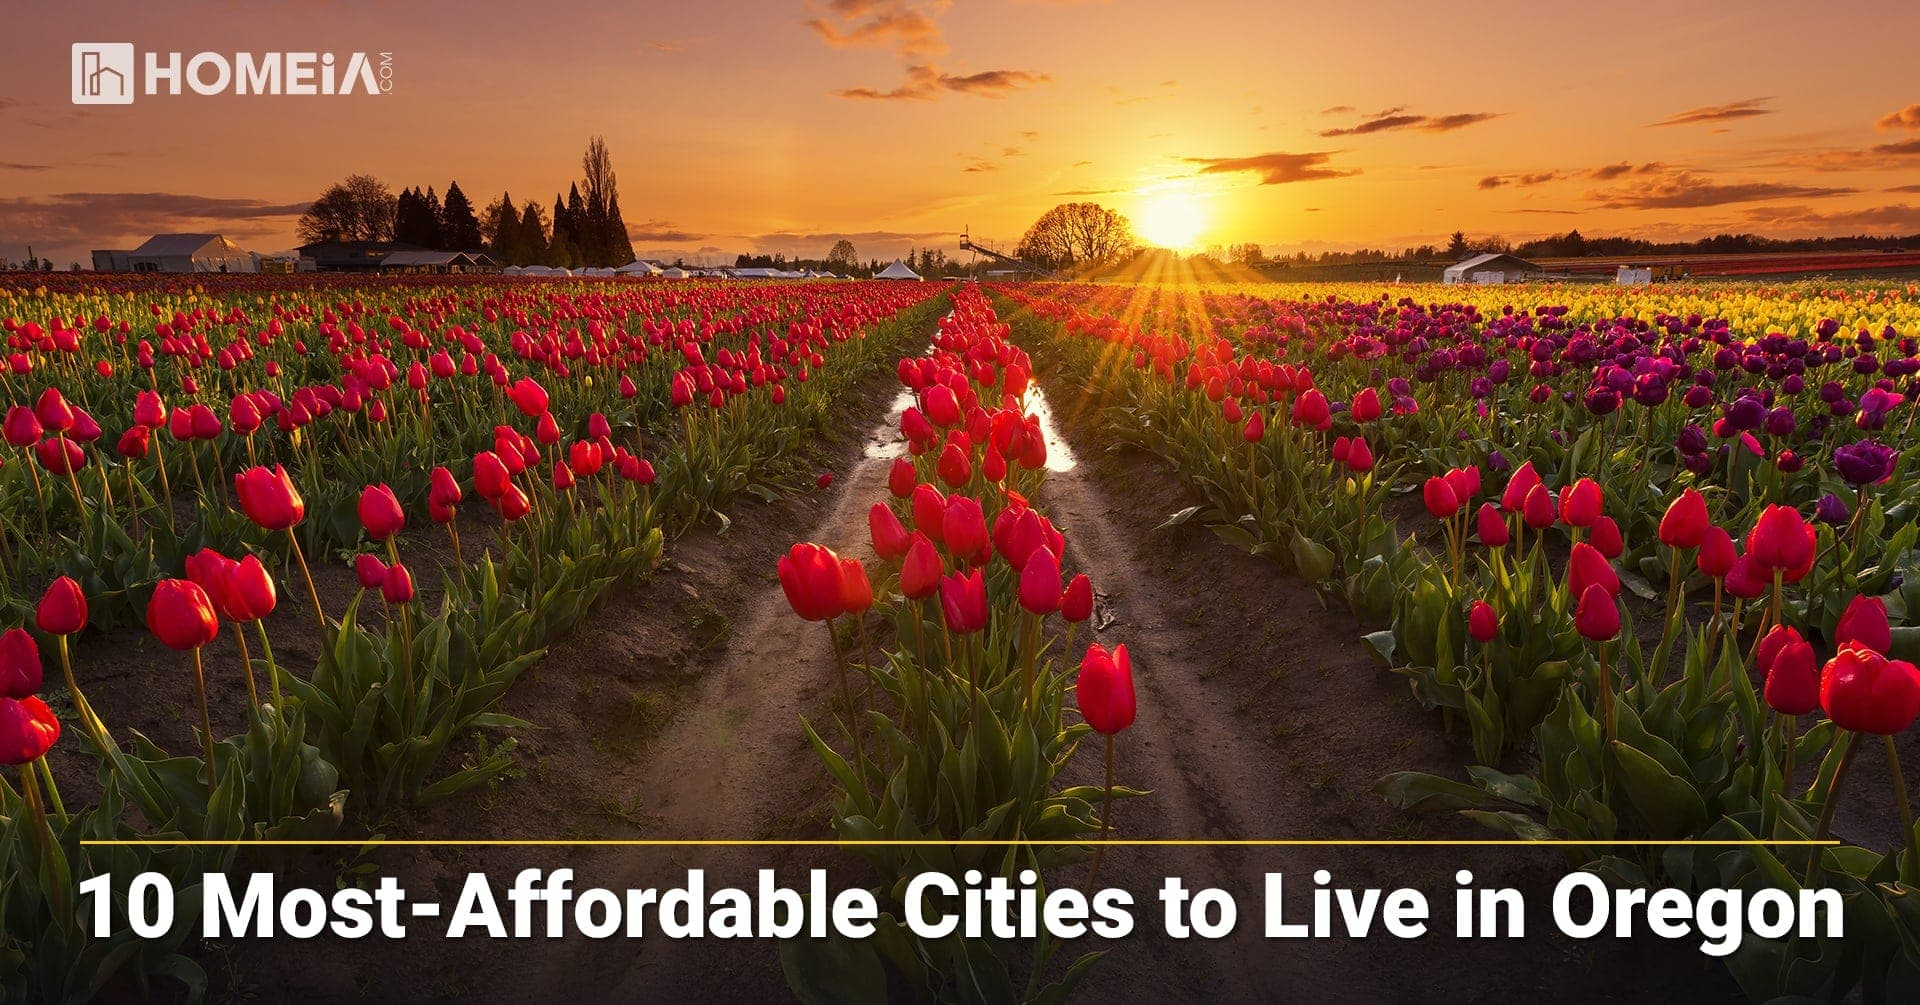 10 Most Affordable Cities to Live in Oregon